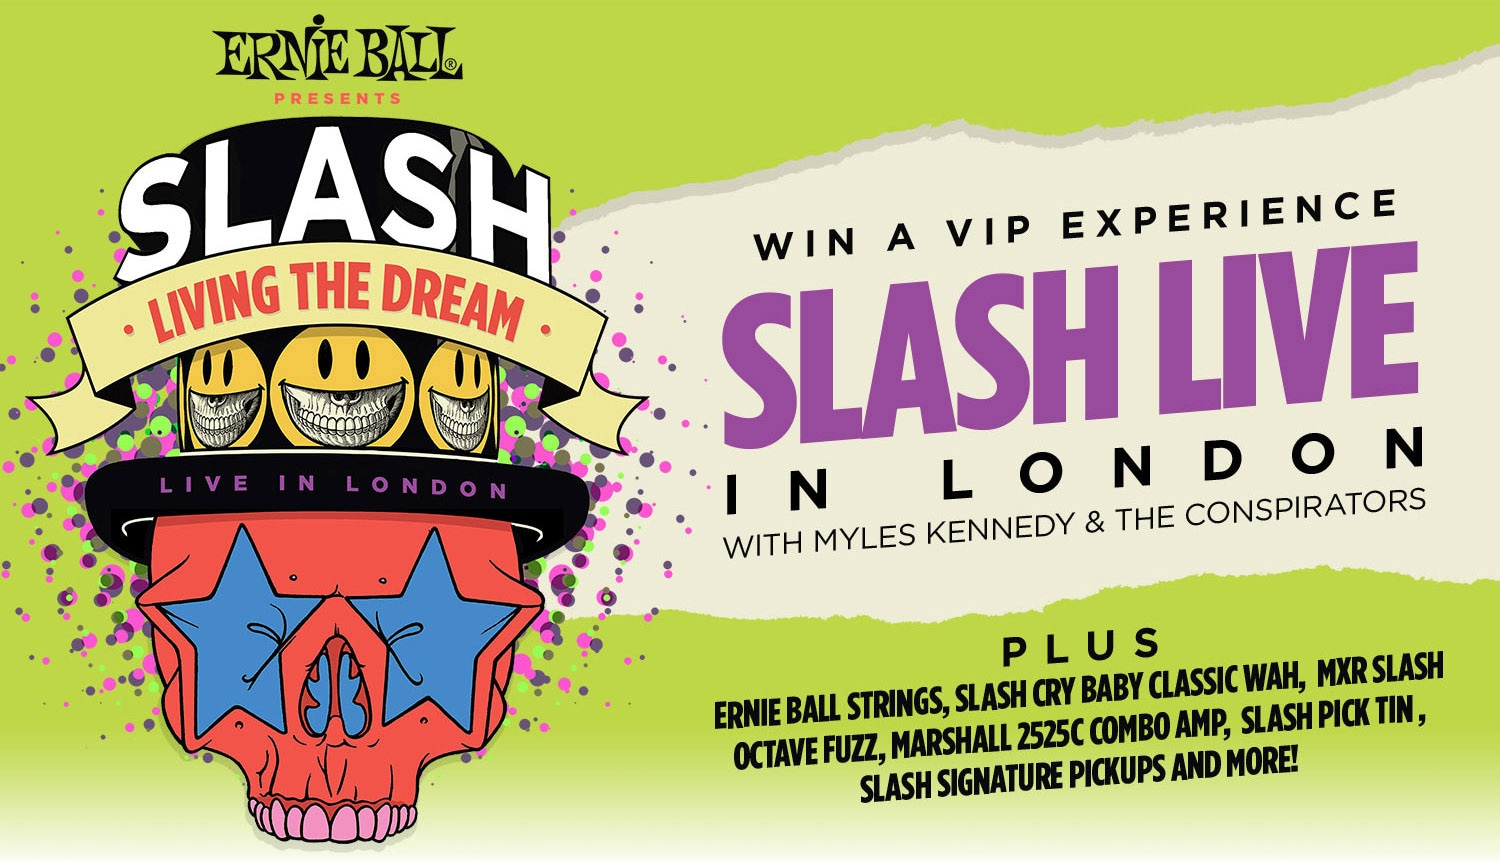 Ernie Ball Presents: Slash Living the Dream. Live in London. Win a V.I.P. Experience - Slash Live in London with Myles Kenedy and The Conspirators. Plus: Ernie Ball Strings, Slash Cry Baby Classic Wah, M.X.R. Slash Octave Fuzz, Marshall 2525C Combo Amp, Slash Pick Tin, Slash Signature Pickups and More!